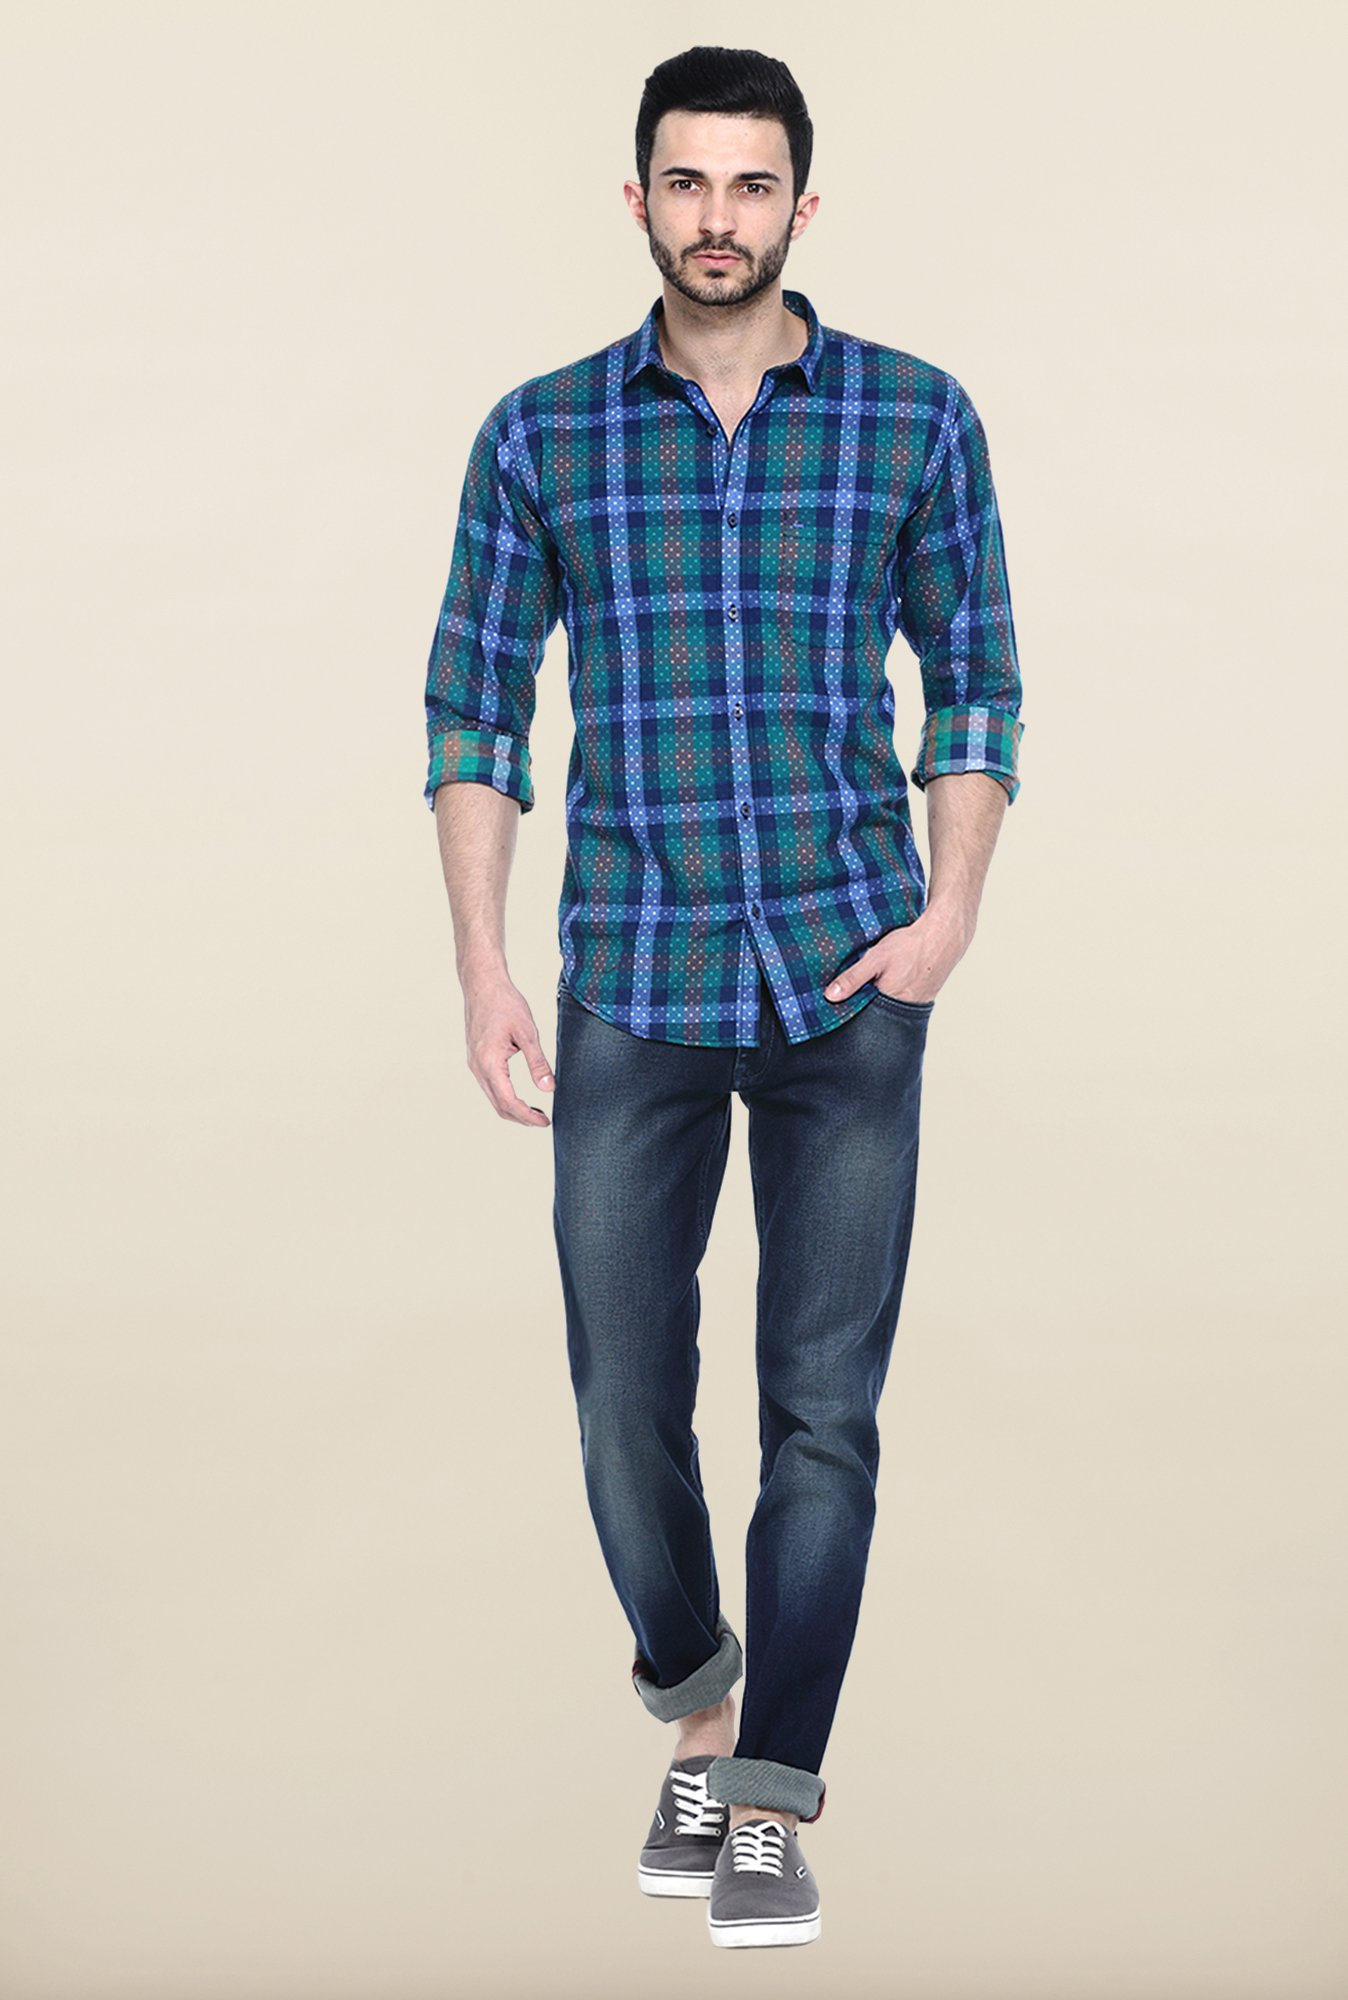 Basics Blue And Green Checked Cotton Shirt